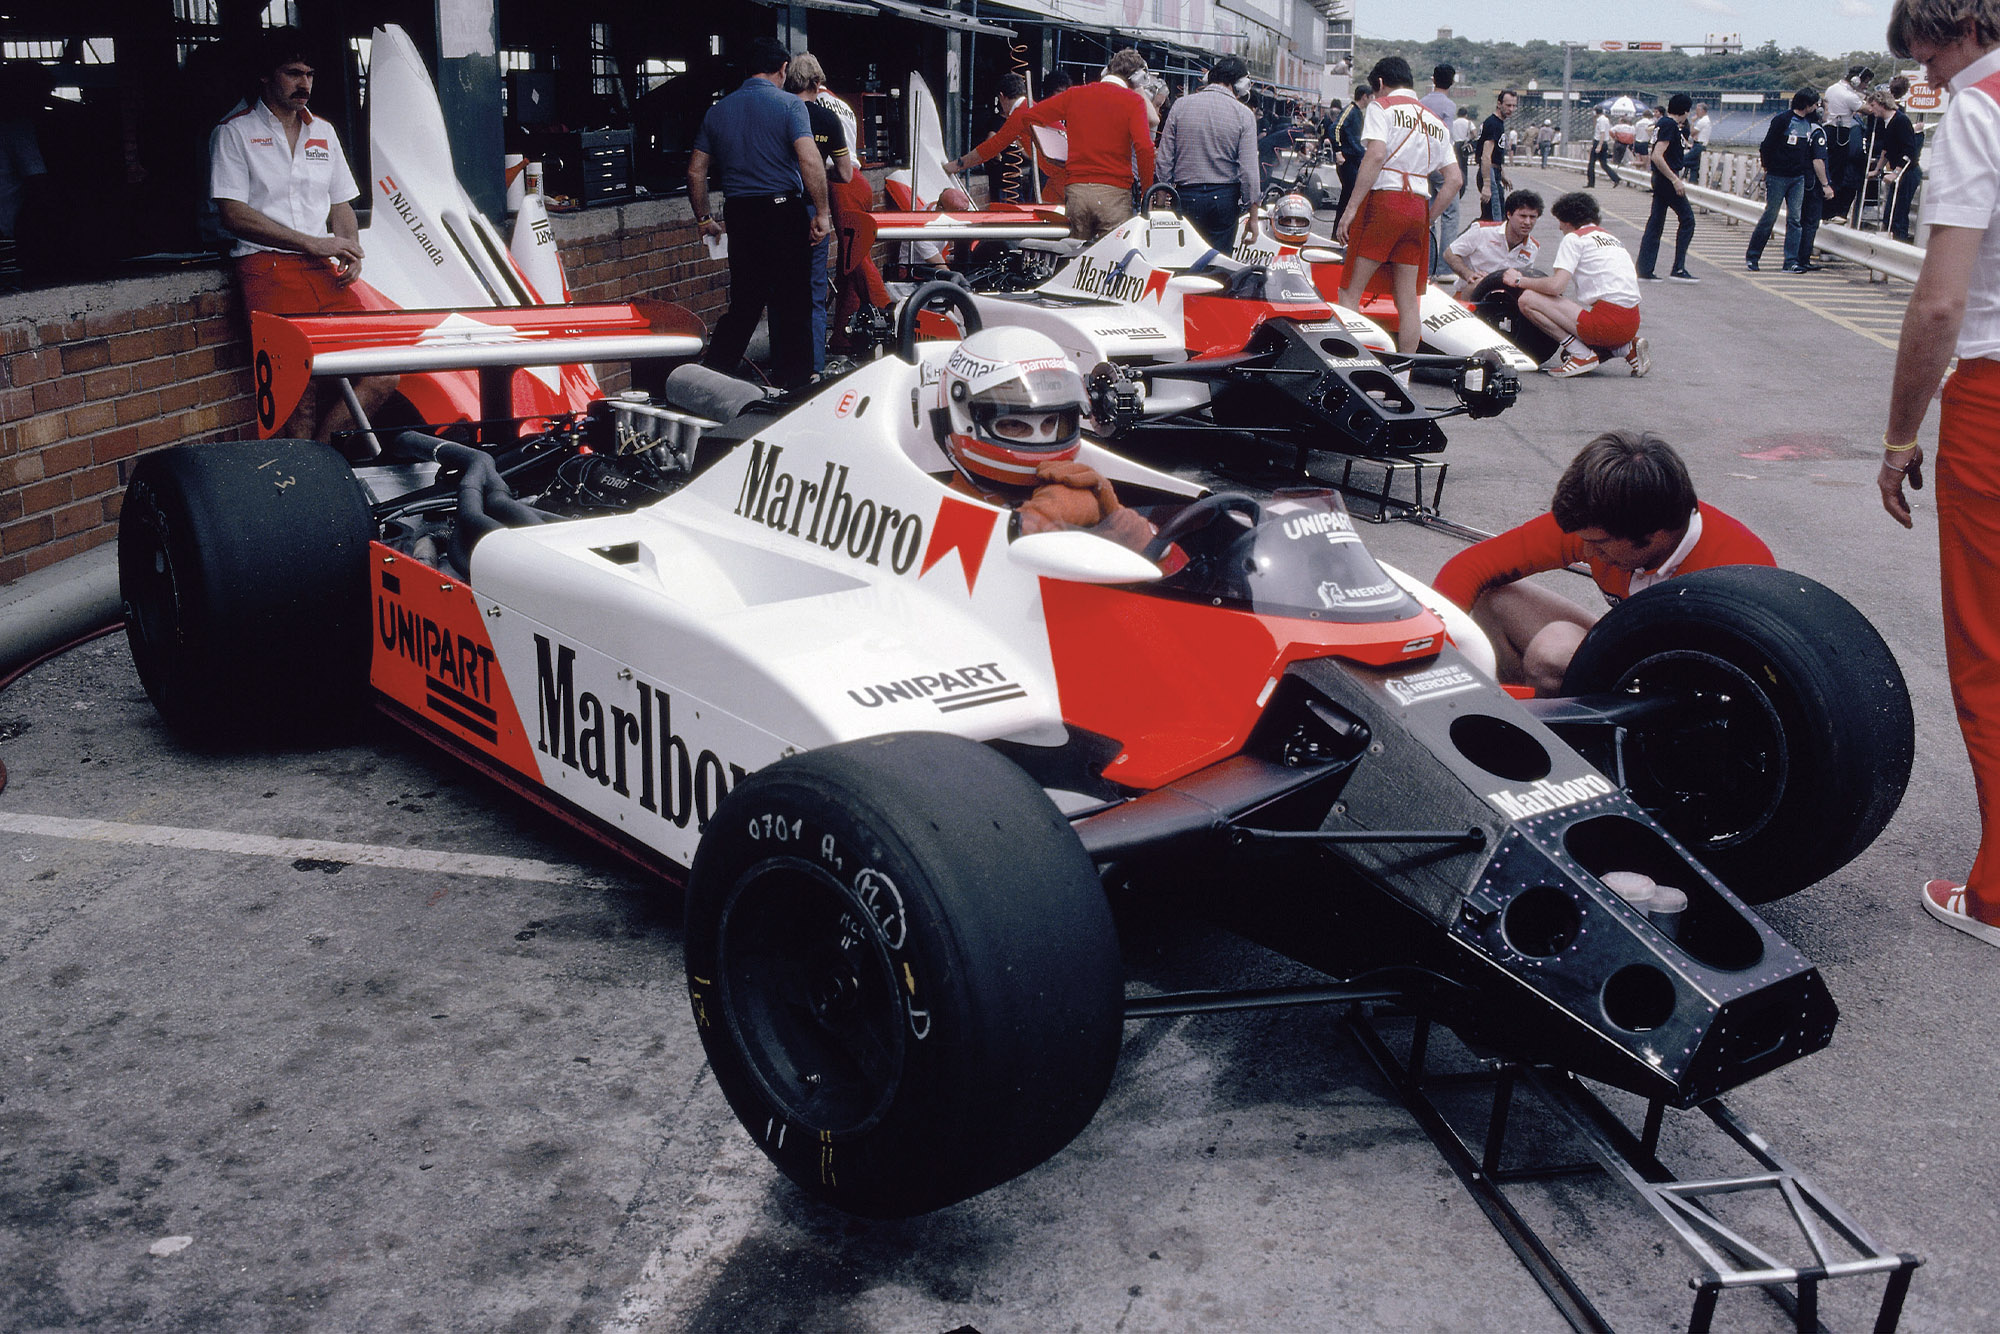 Niki Lauda sits in his McLaren in the pits at Kyalami during the 1982 South African Grand Prix weekend